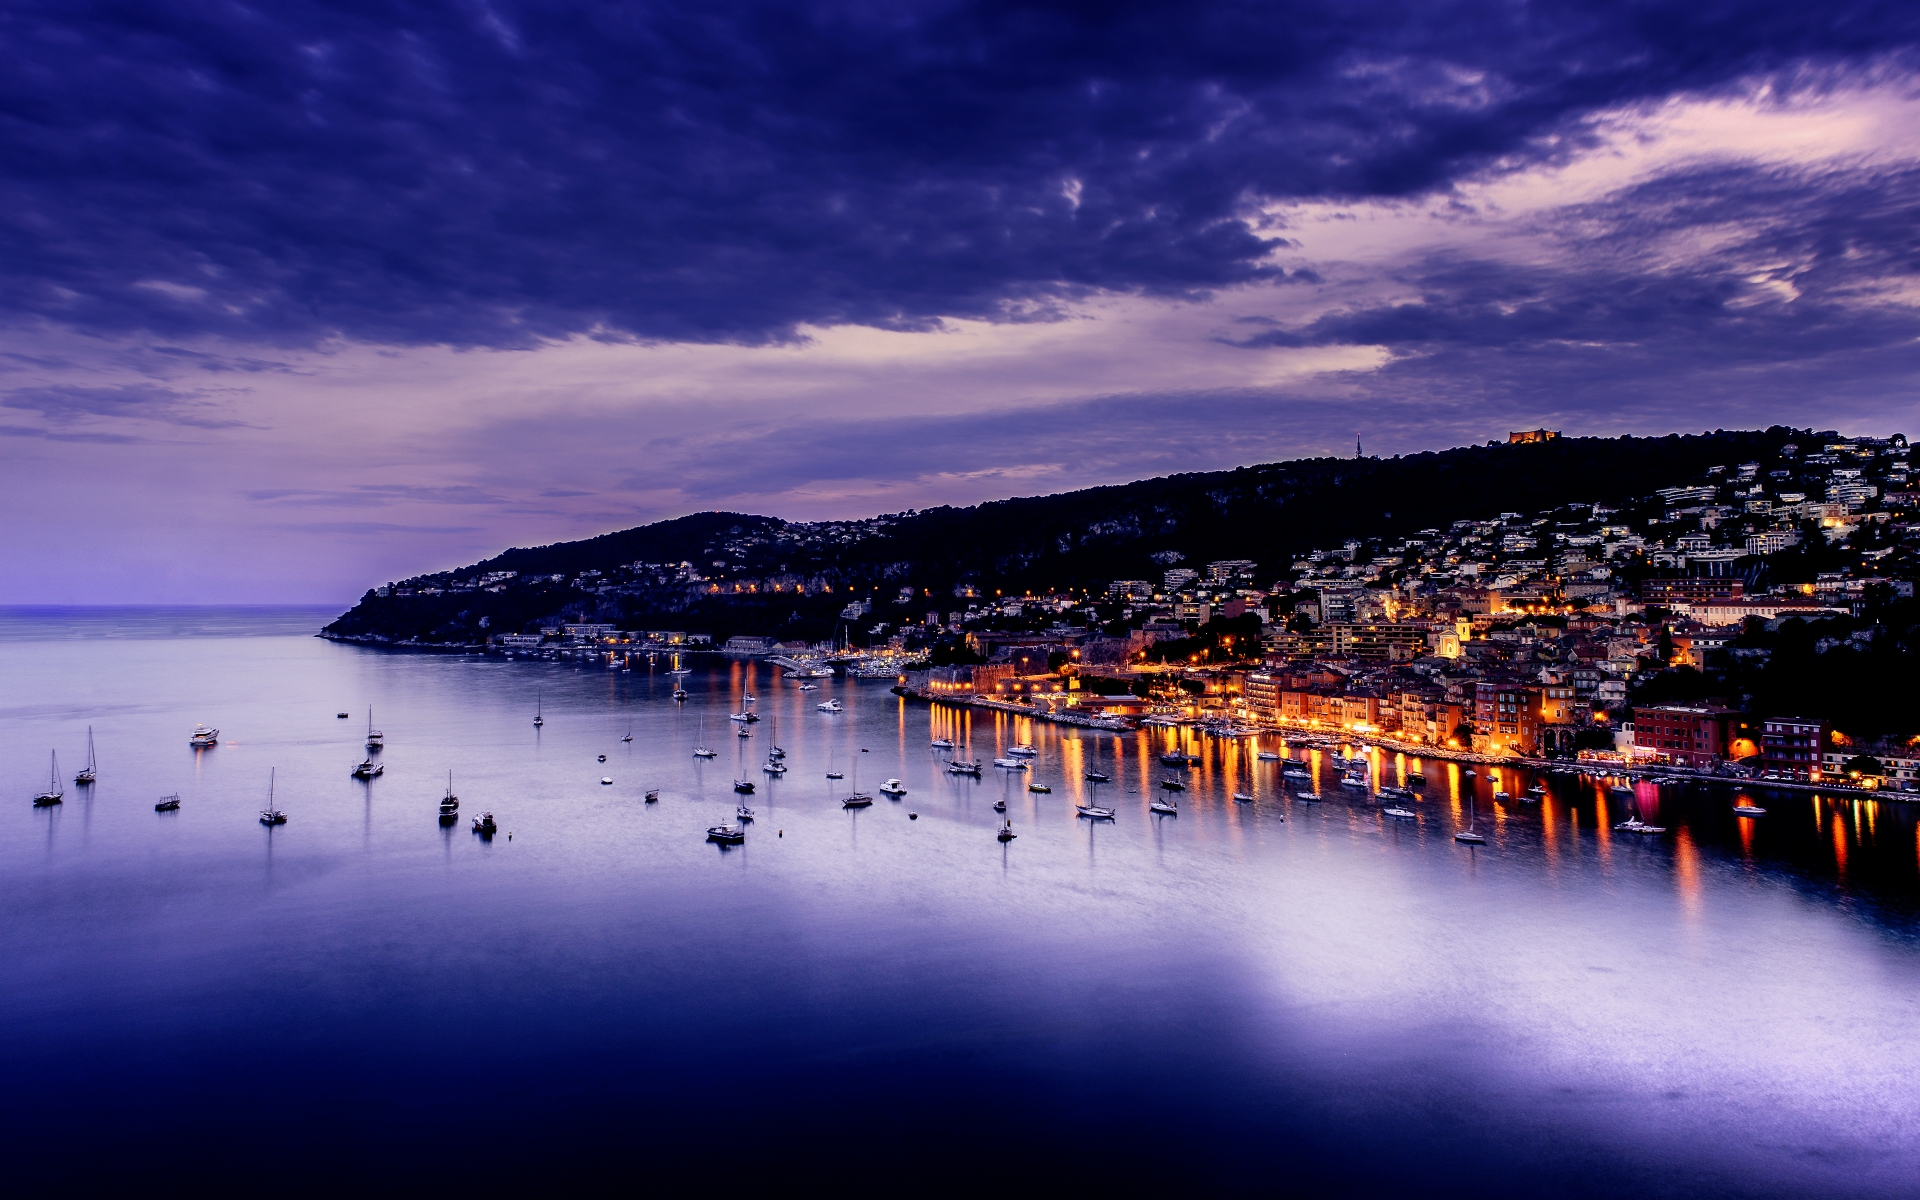 Villefranche Sur Mer on the French Riviera at dusk